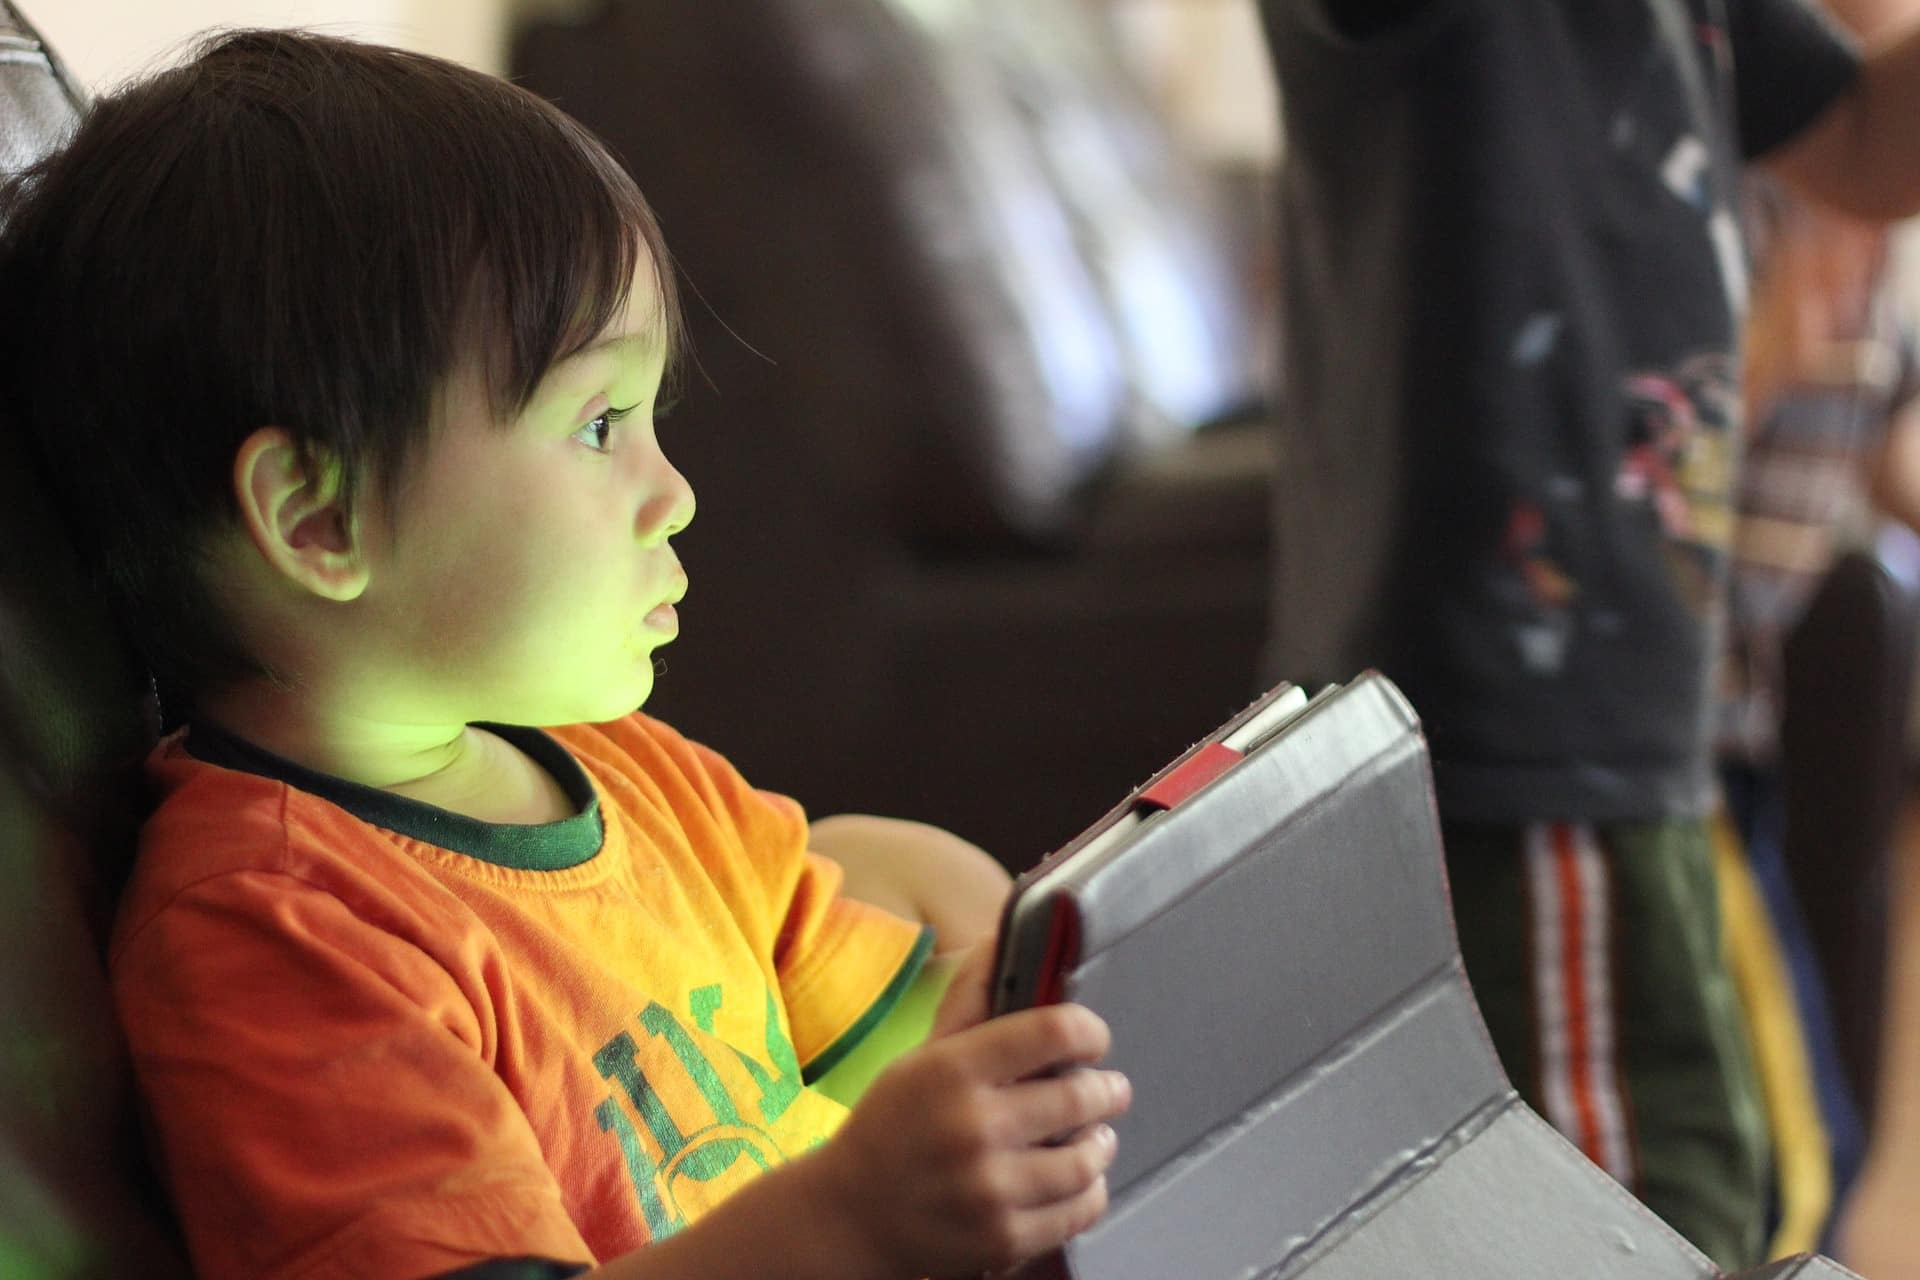 children and limit screen time - problems and issues